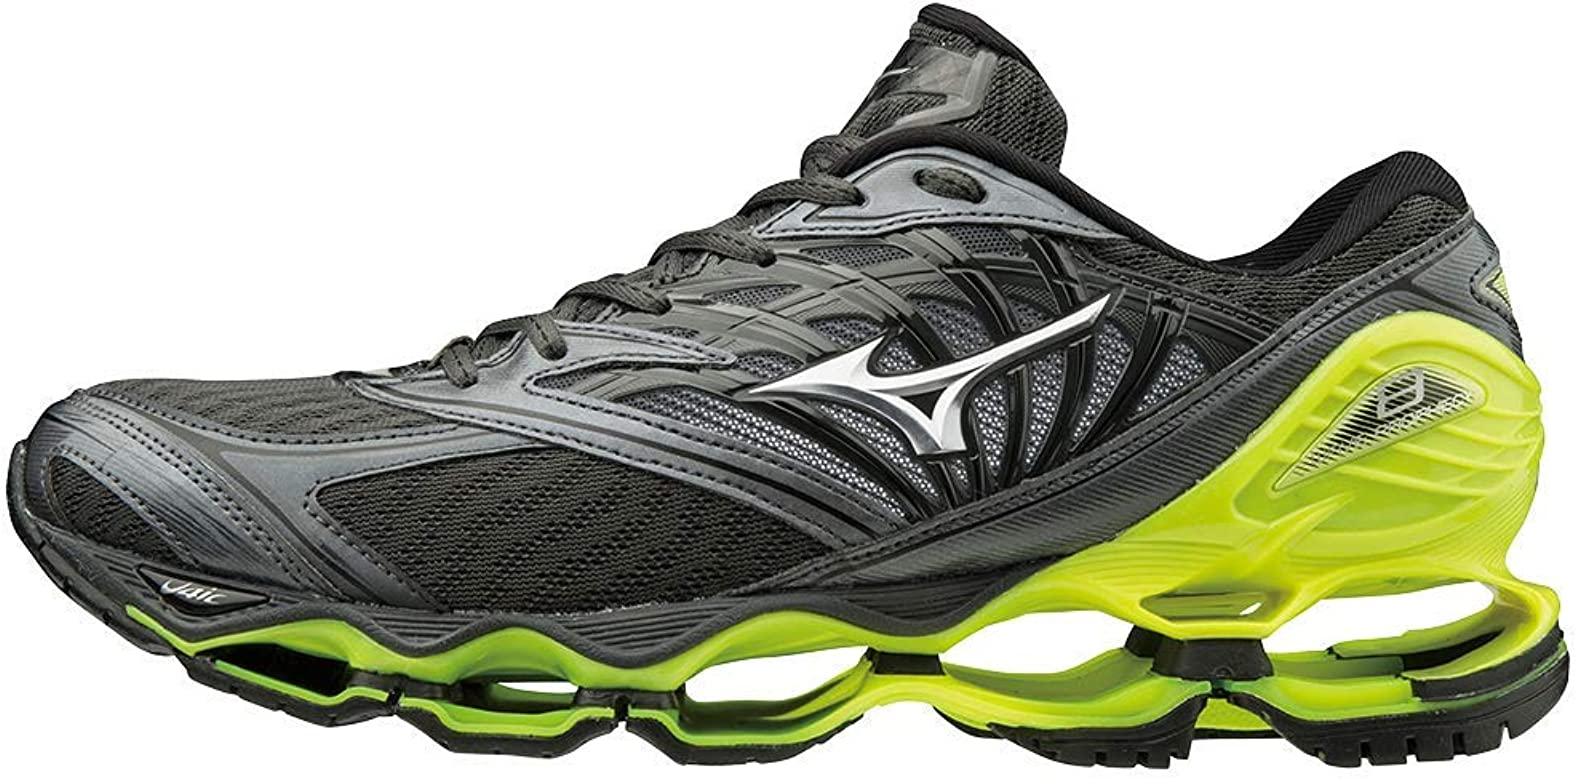 Mizuno Wave Prophecy 8 Zapatillas de Running, Hombre, Negro (Dark Shadow/Silver/Safety Yellow 05), 46 EU: Amazon.es: Ropa y accesorios